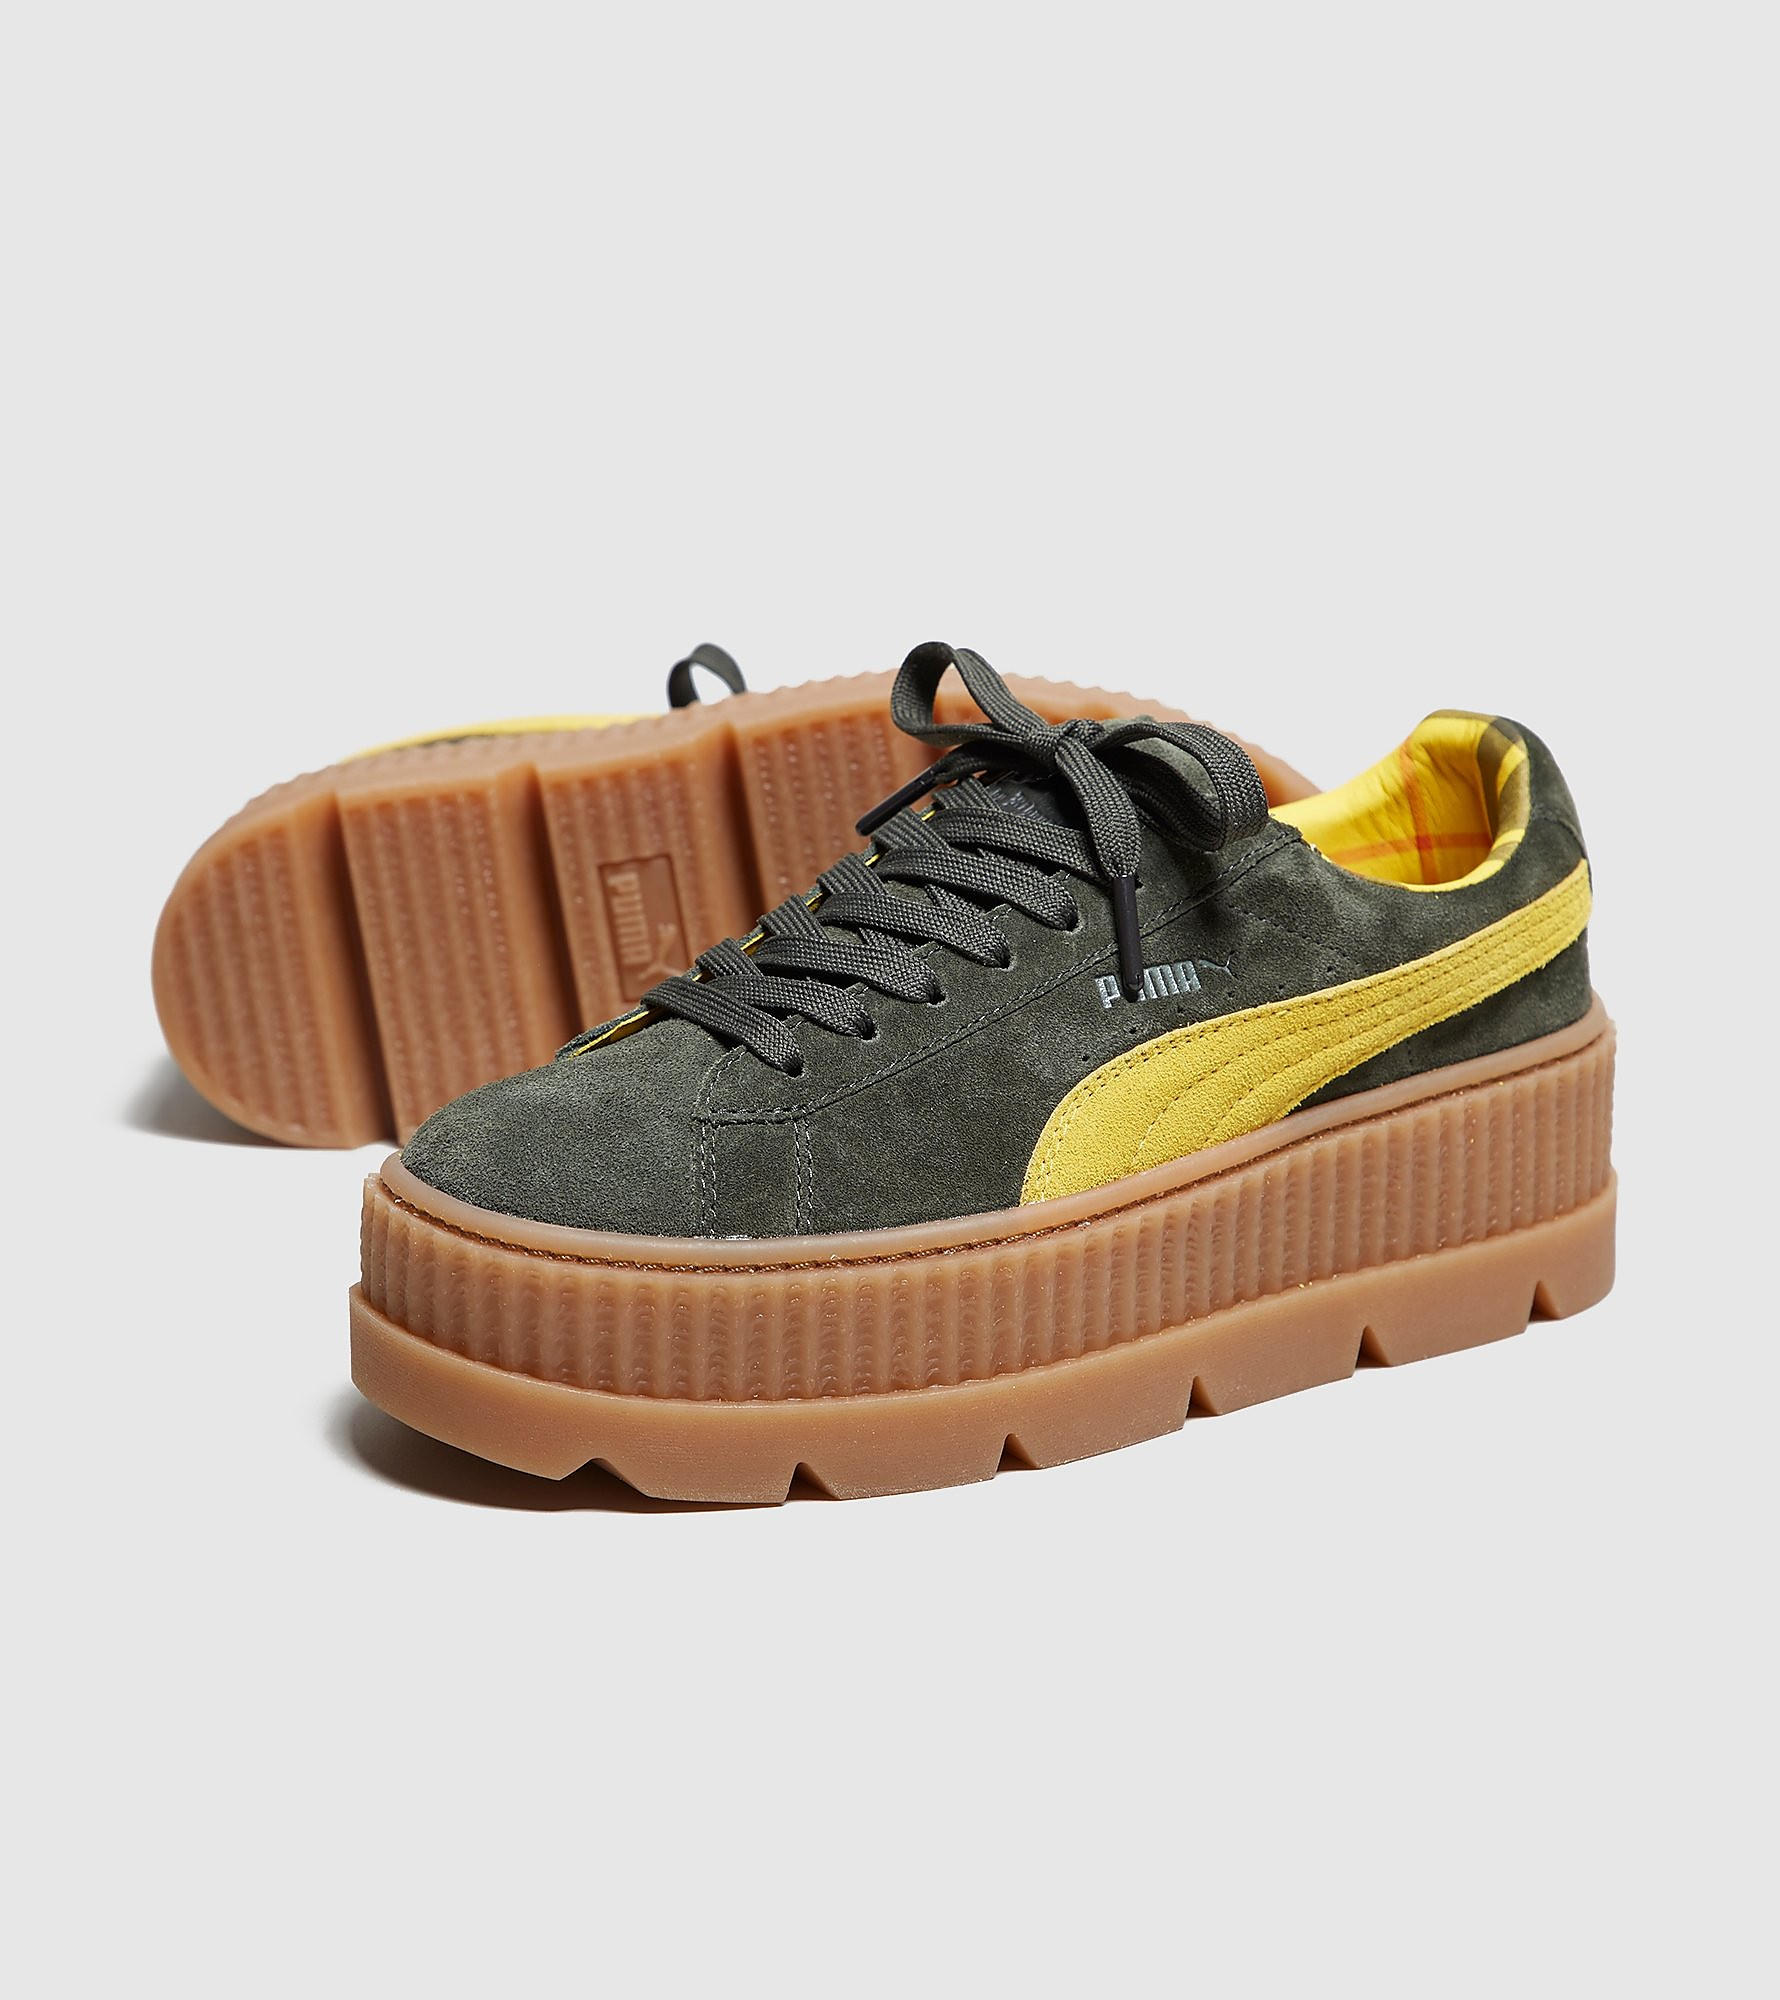 PUMA Fenty Cleated Creeper Women's